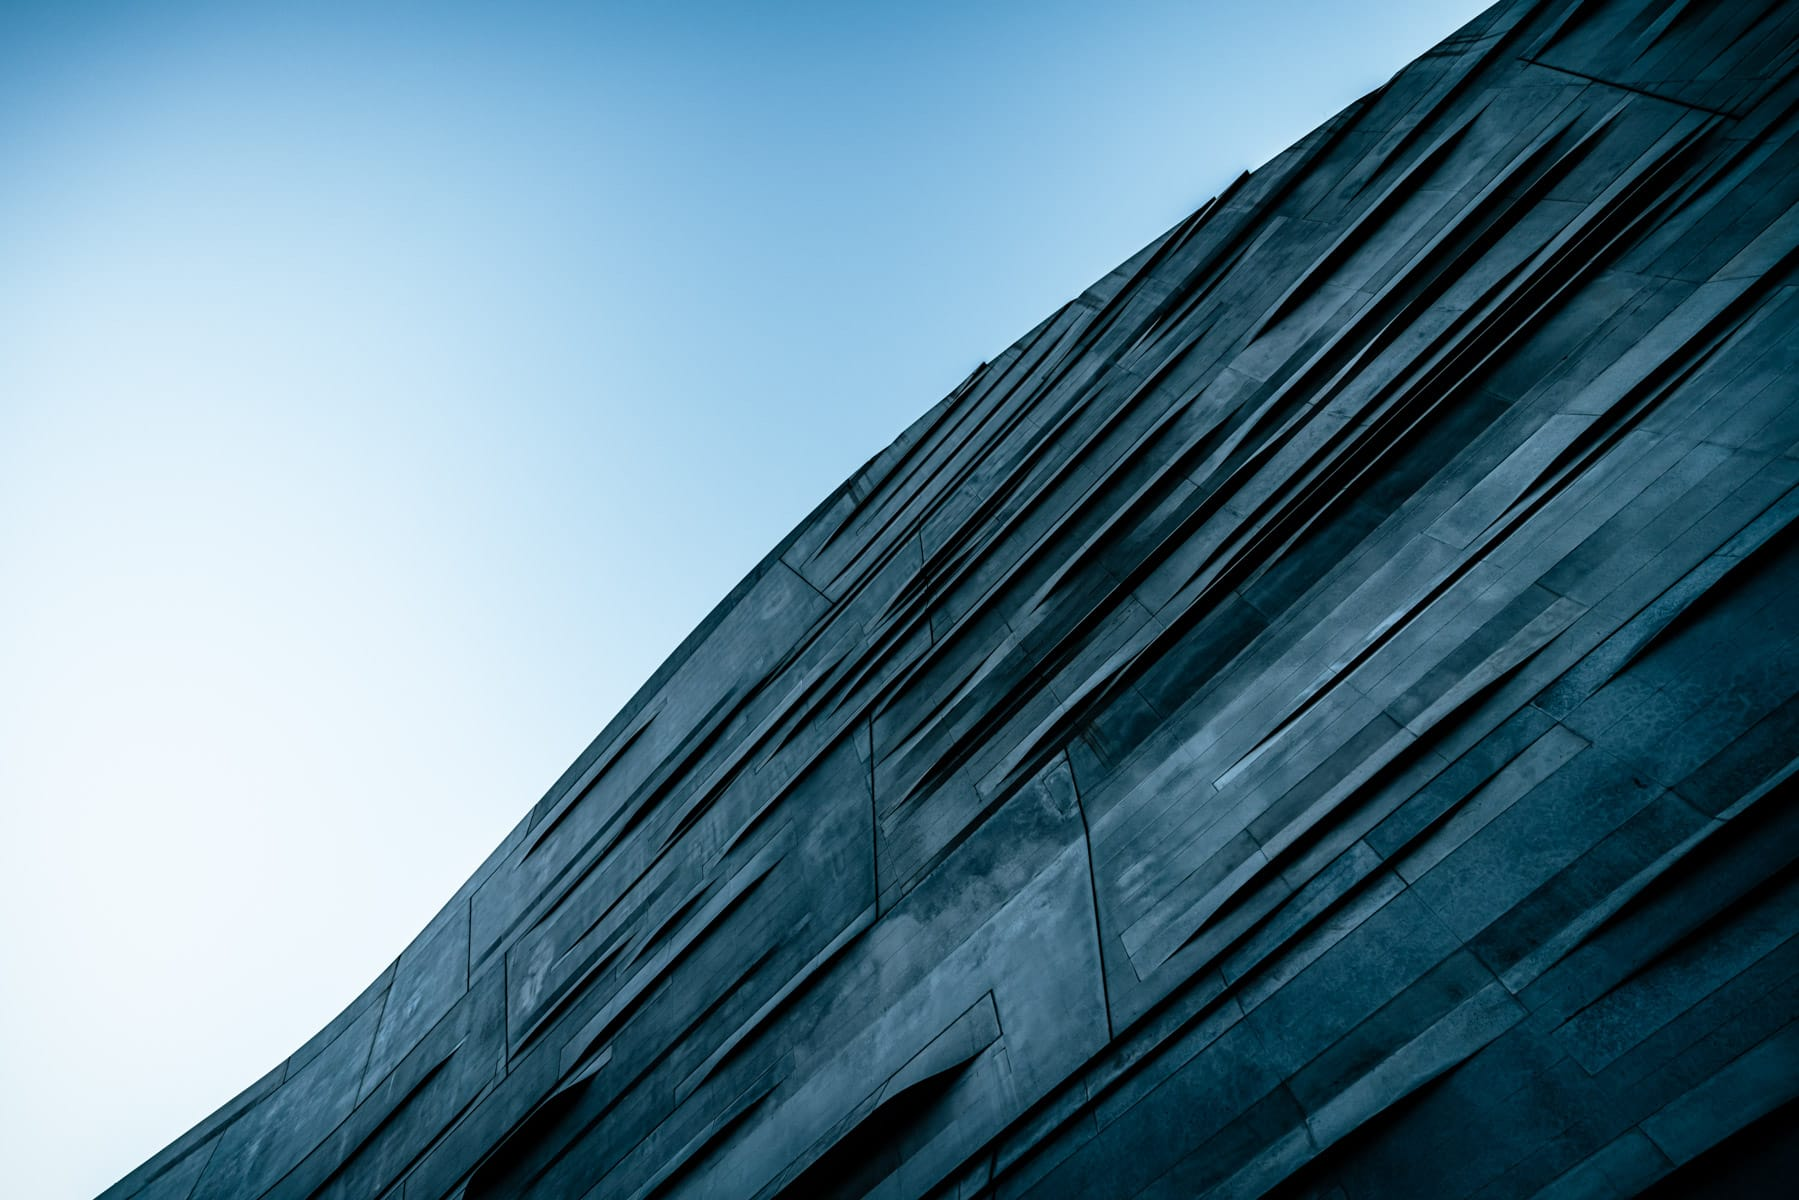 An abstract study of the exterior of Dallas' Perot Museum of Nature & Science.